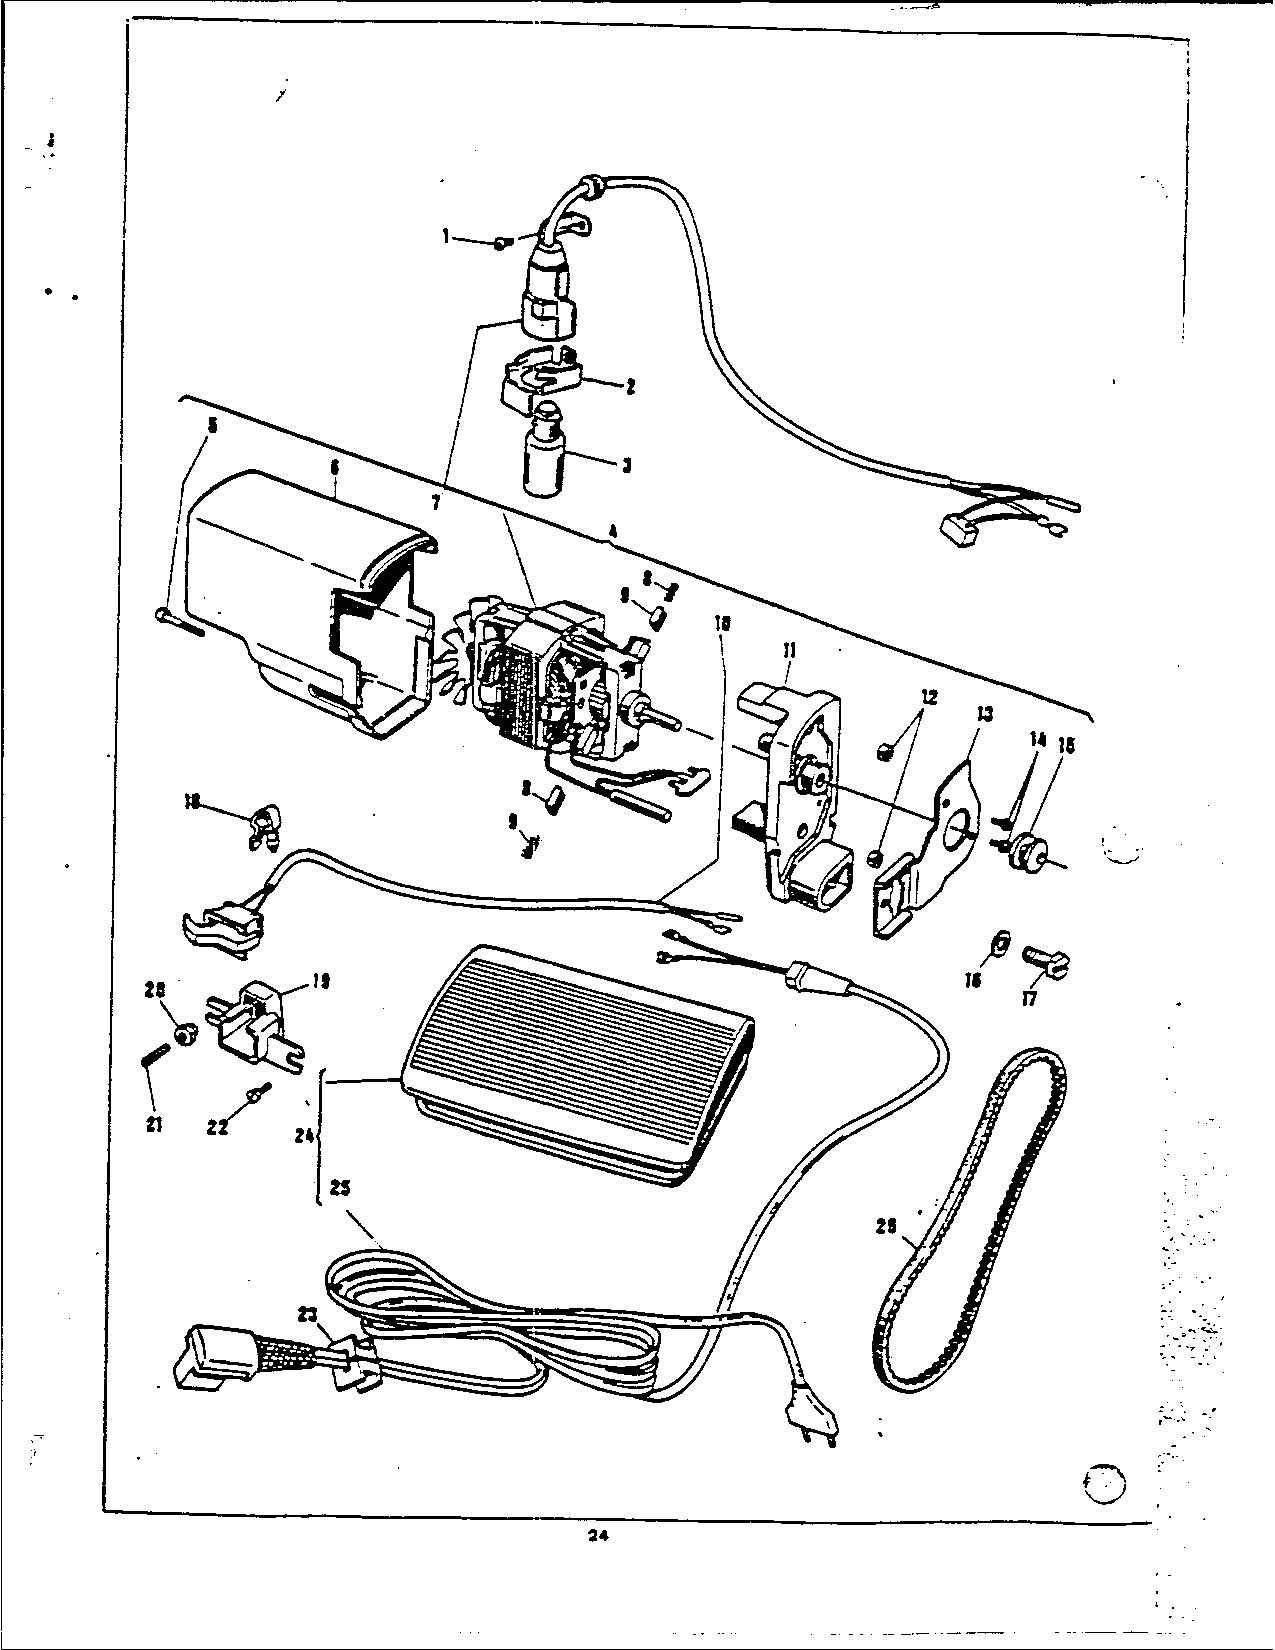 Singer Merritt 8834, meritt 8734 User Manual